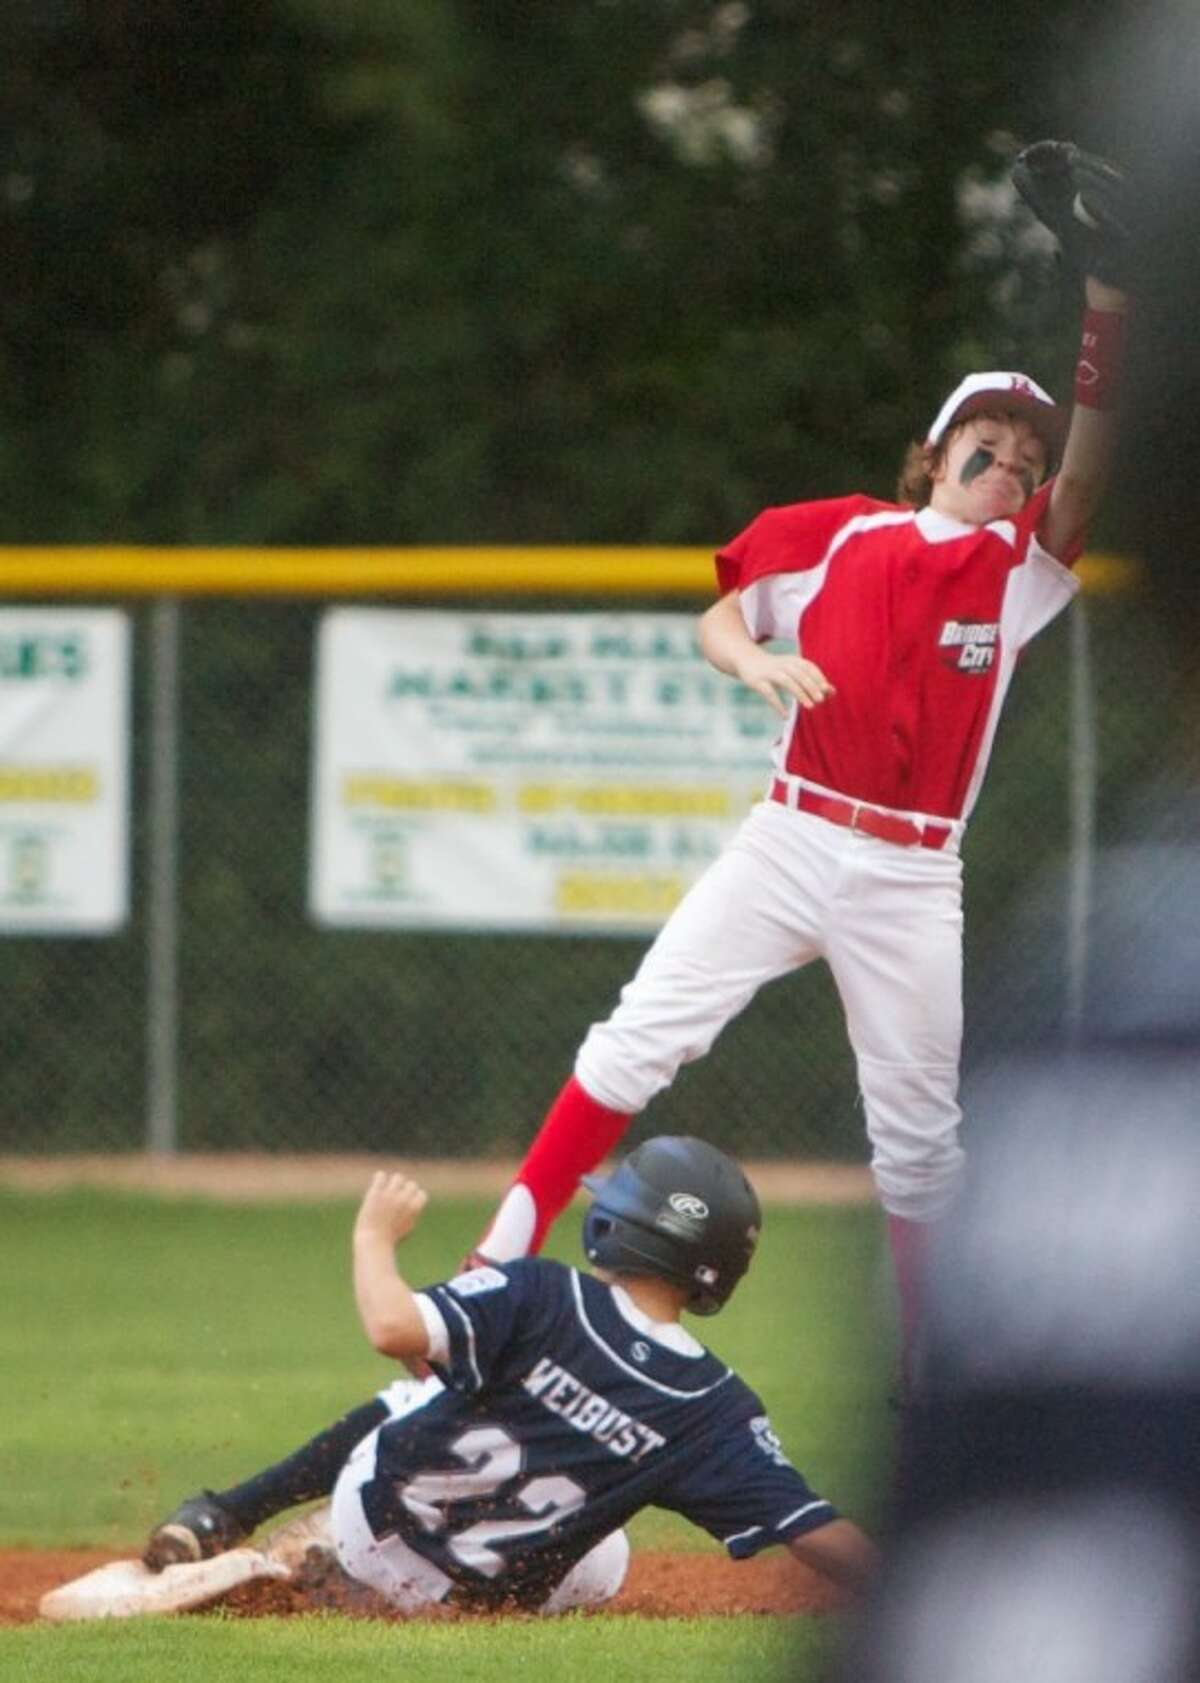 ORWALL National's Tyler Weibust slides safely into second base during Wednesday night's Texas East Little League Section 2 tournament game against Bridge City at the ORWALL Complex in Spring.